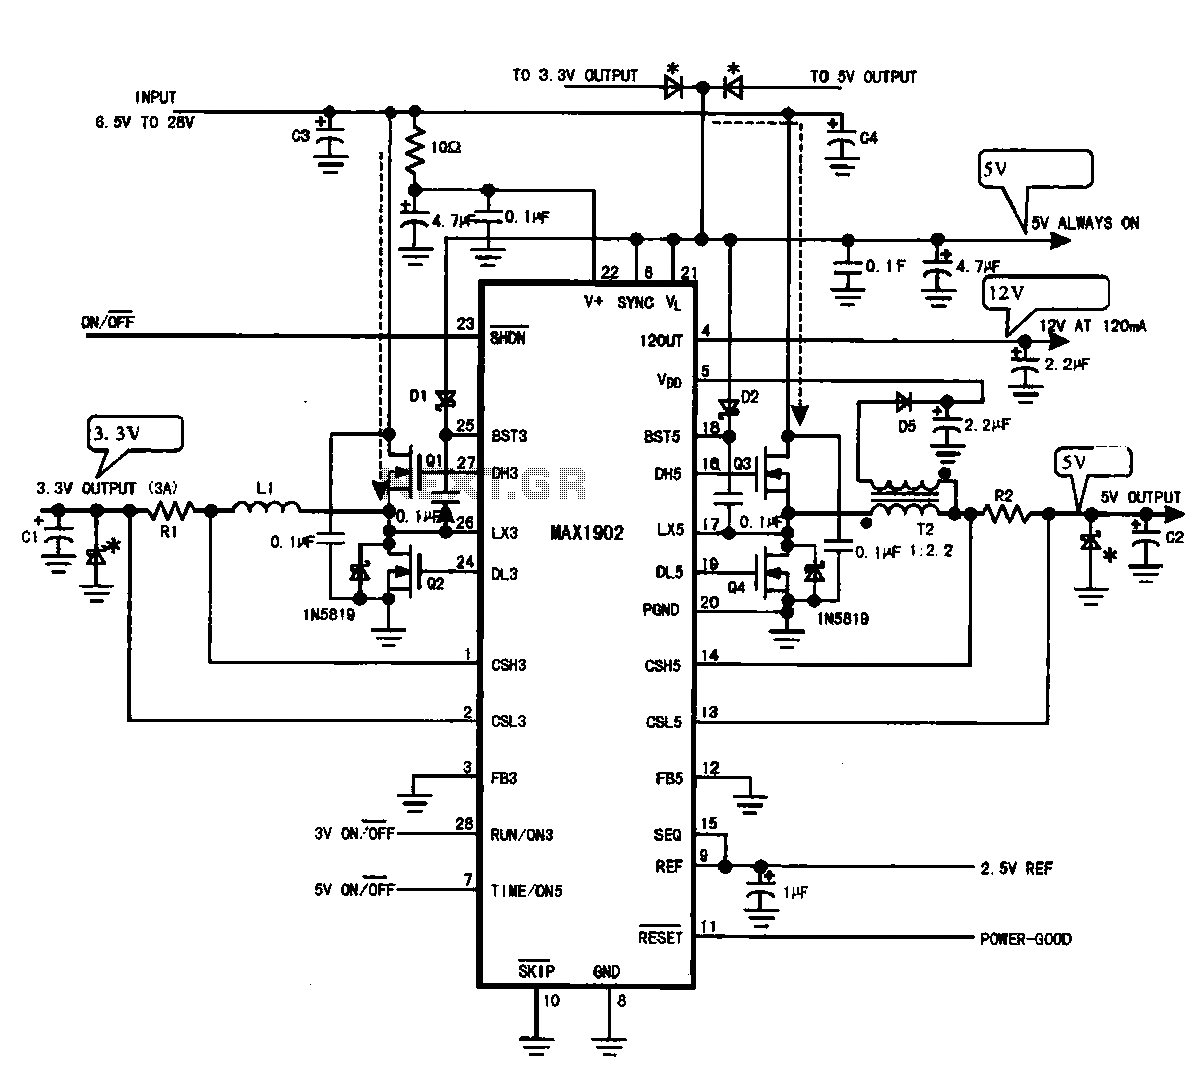 Multi-output power supply circuit (MAX1902) - schematic